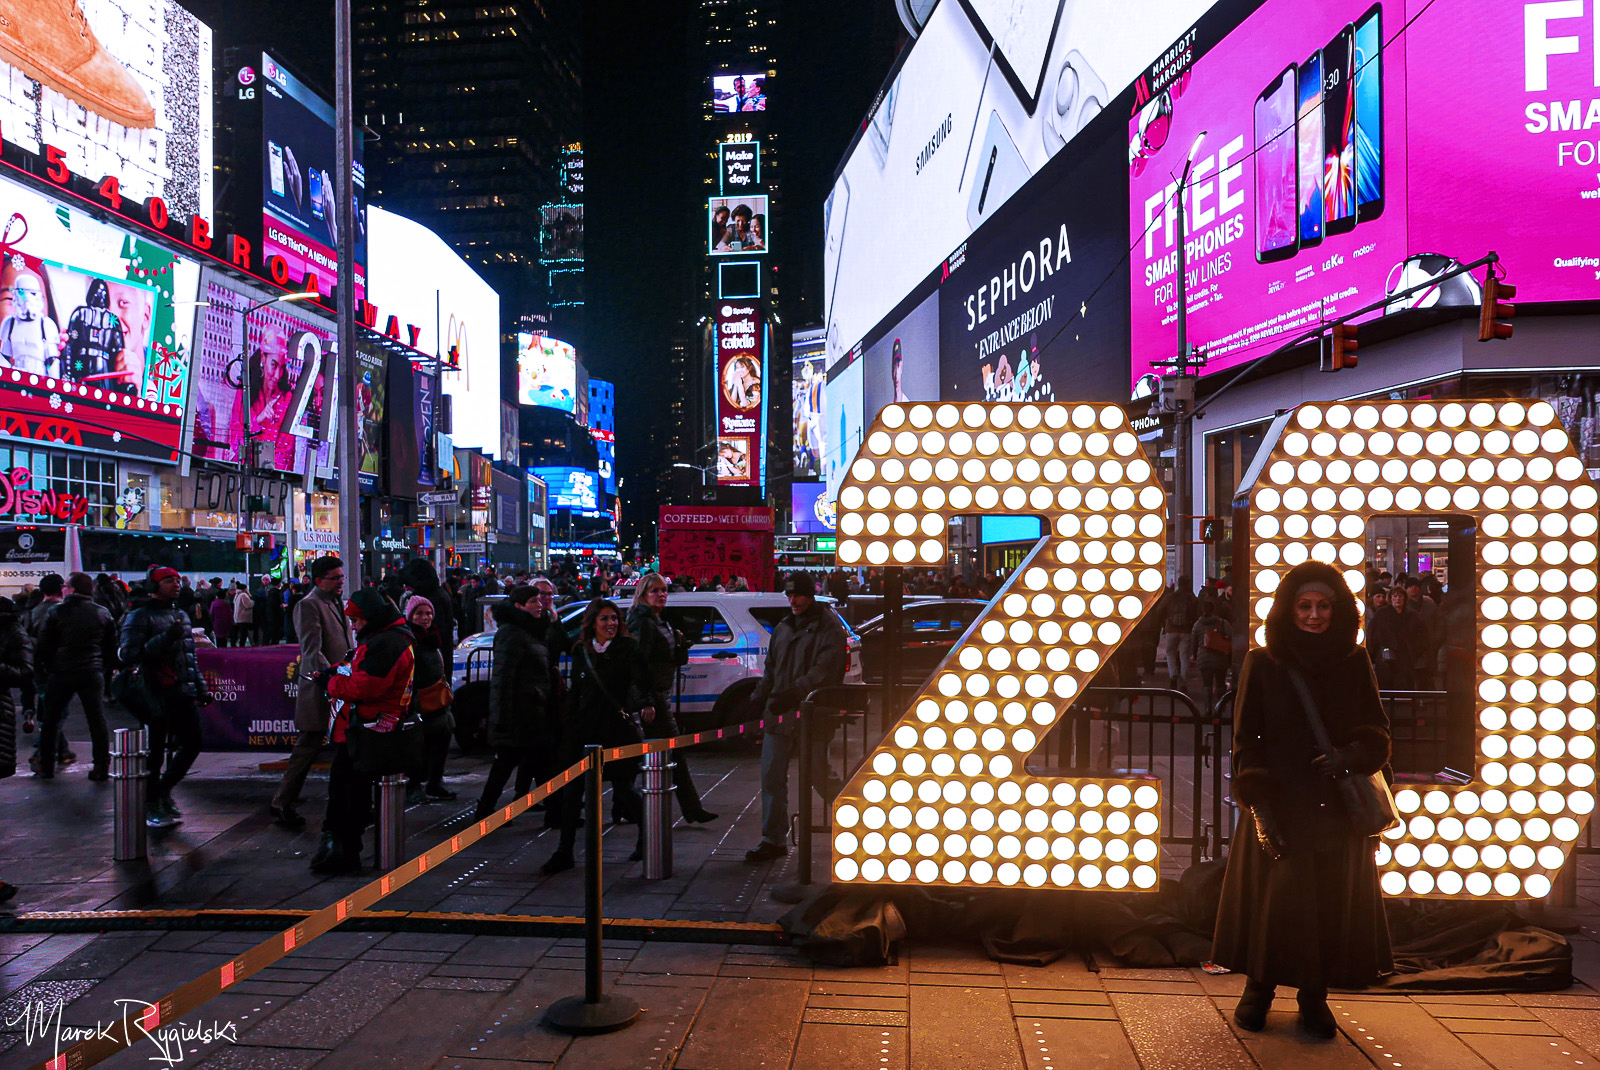 New Decade On The Way: '2020' Sign in Times Square.